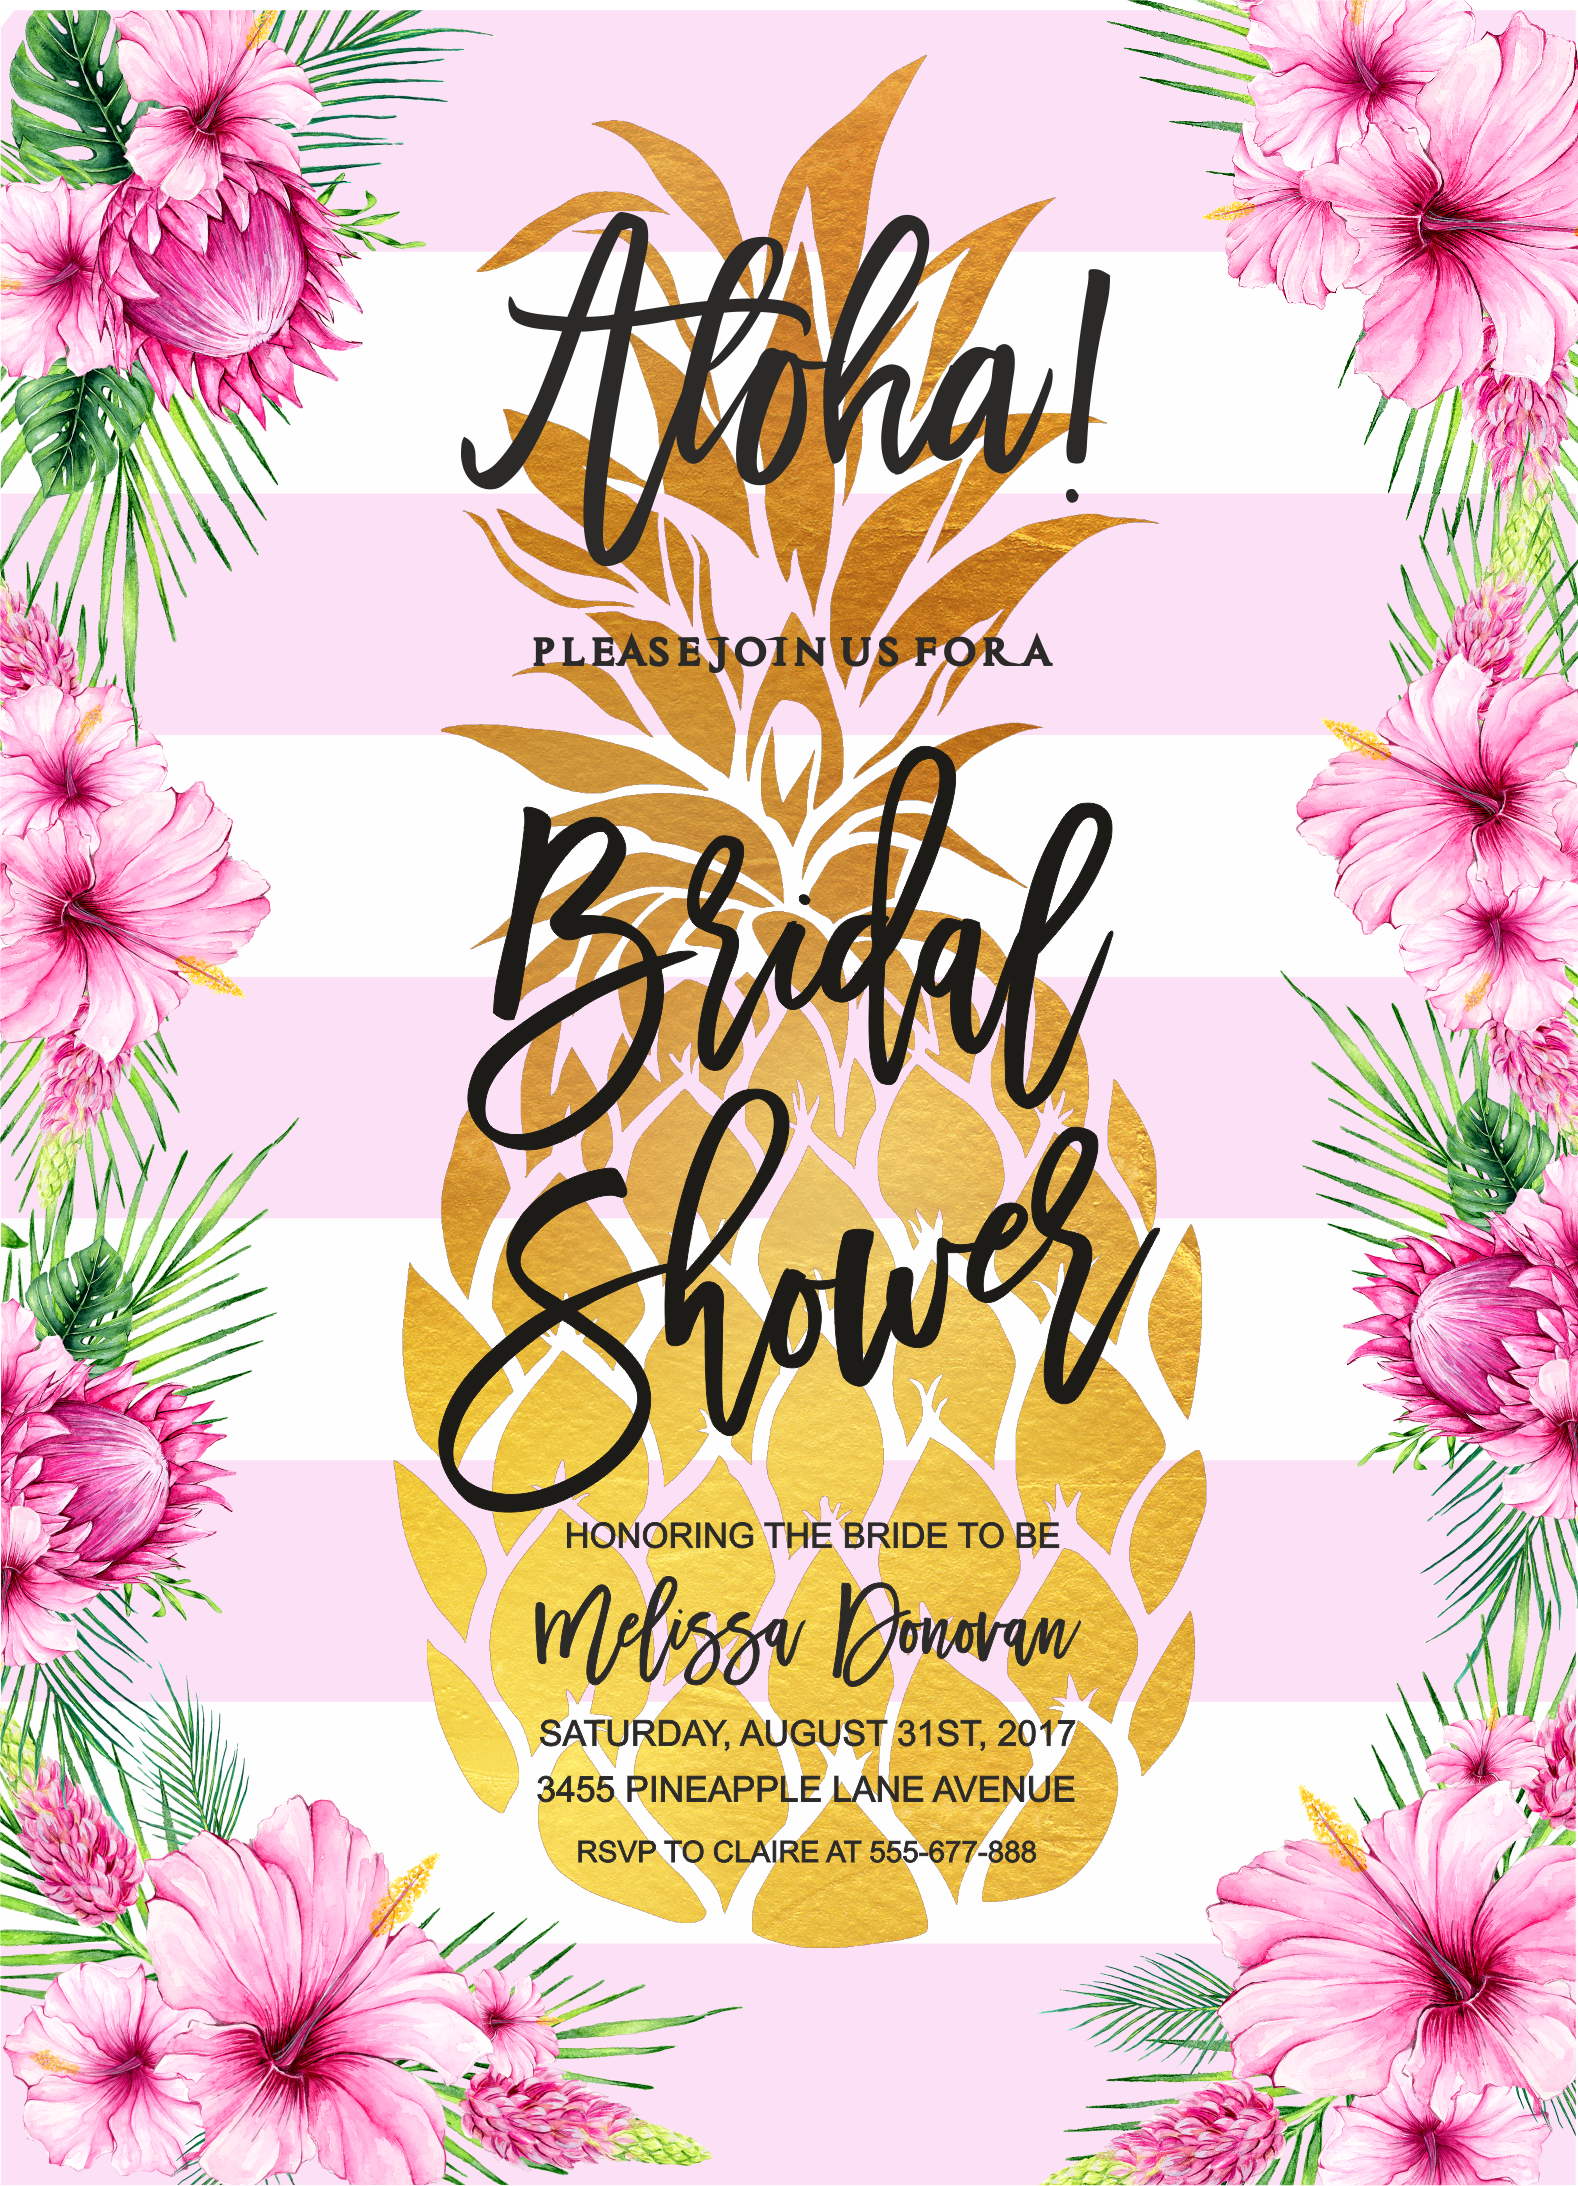 pineapple bridal shower invitation tropical bridal shower invitation tropical aloha bridal shower invitation hawaiian invitation by merryelle design